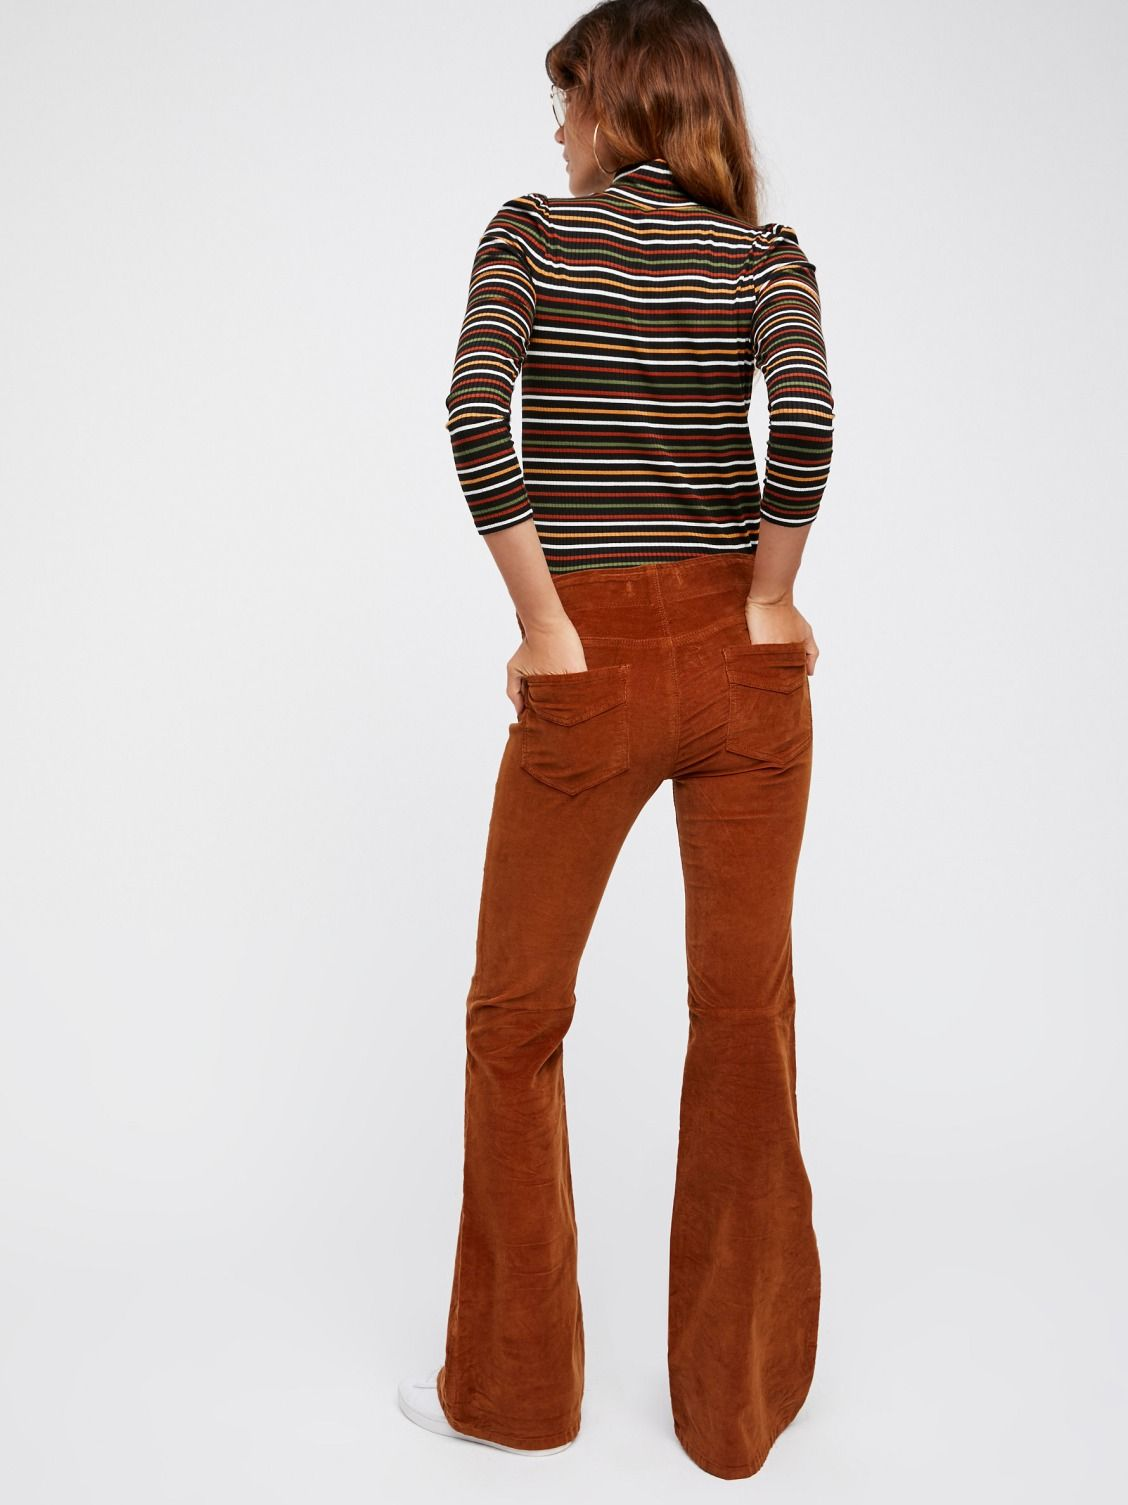 4c8e178f53 Pull On Corduroy Flare | New Arrivals | Pants, Fashion, Corduroy